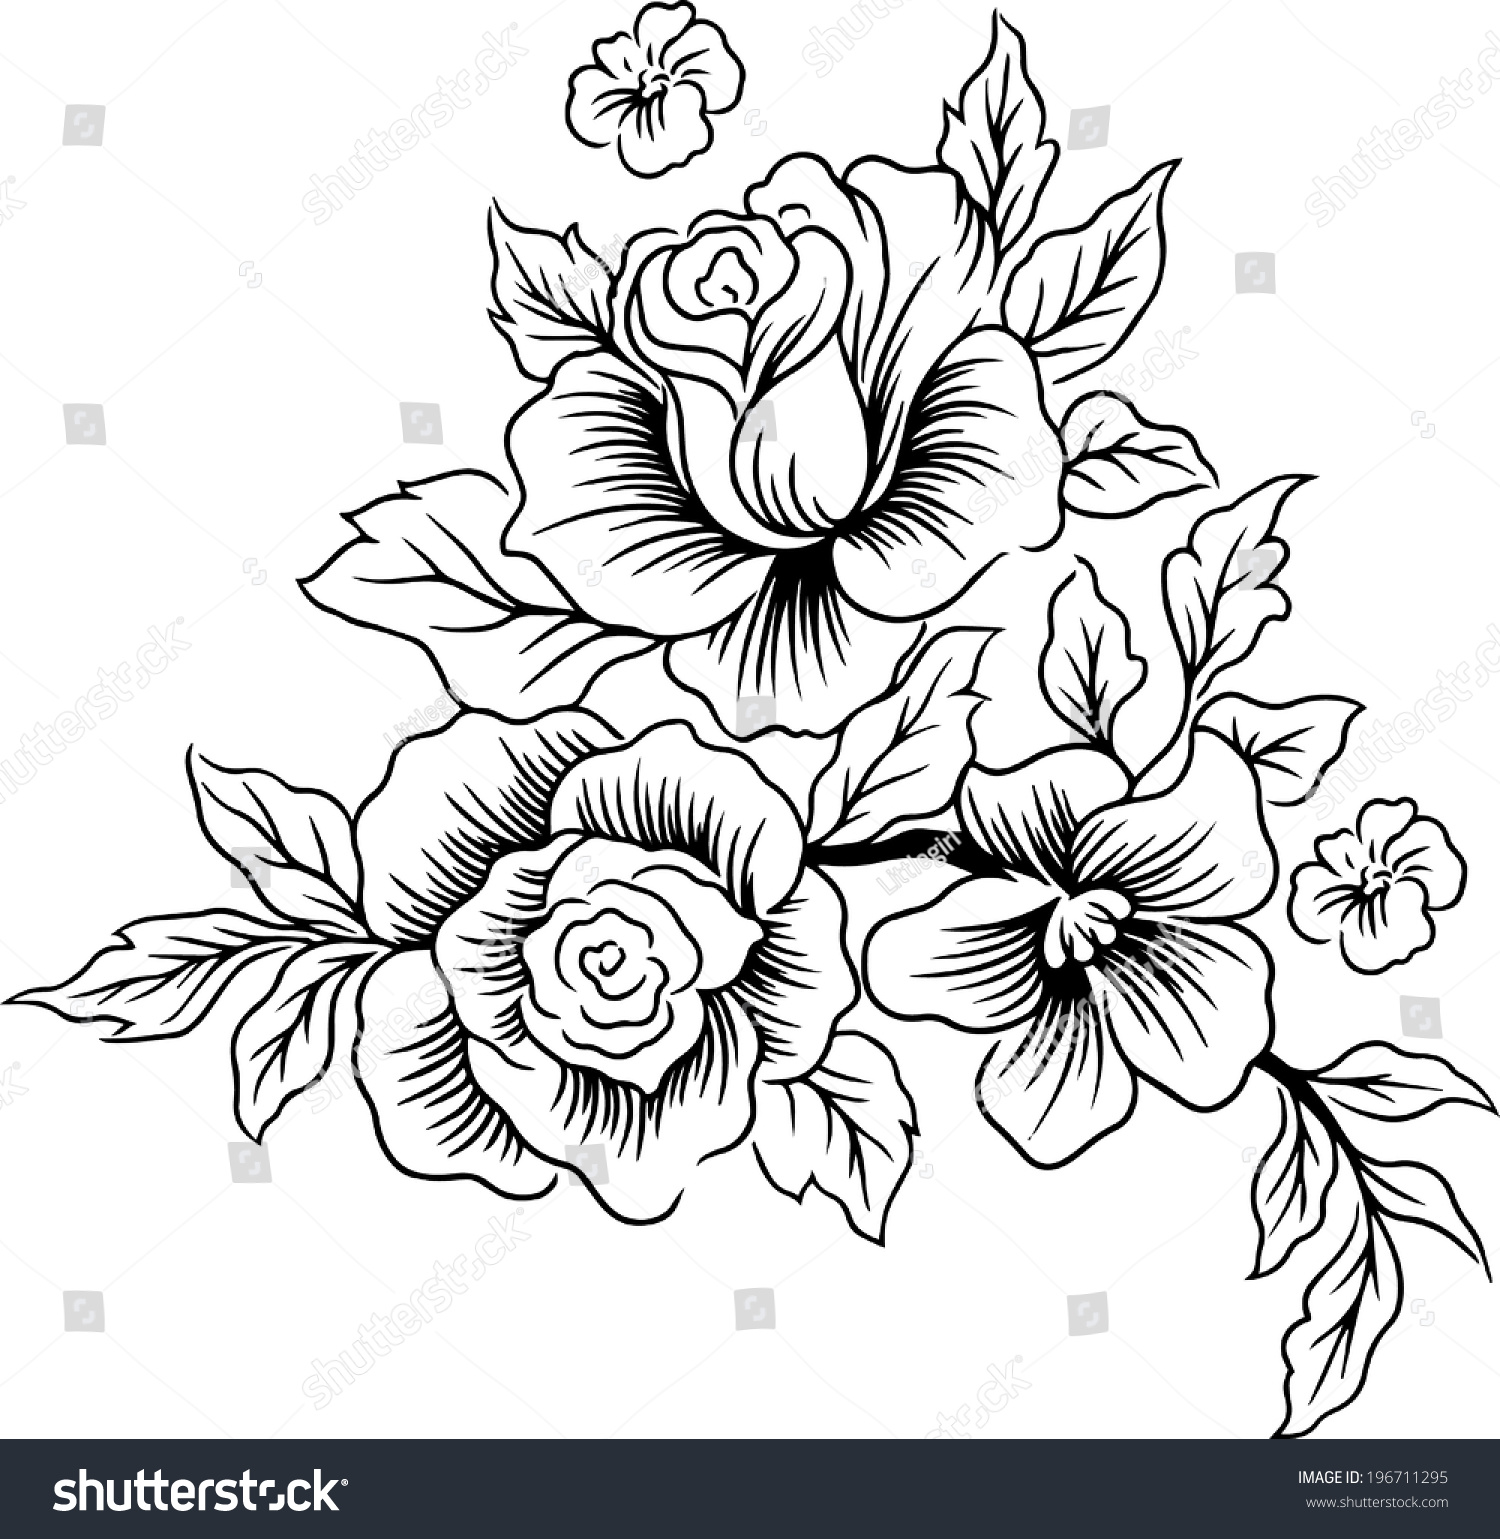 Drawings Lines Beautiful Flowers Stock Vector Royalty Free